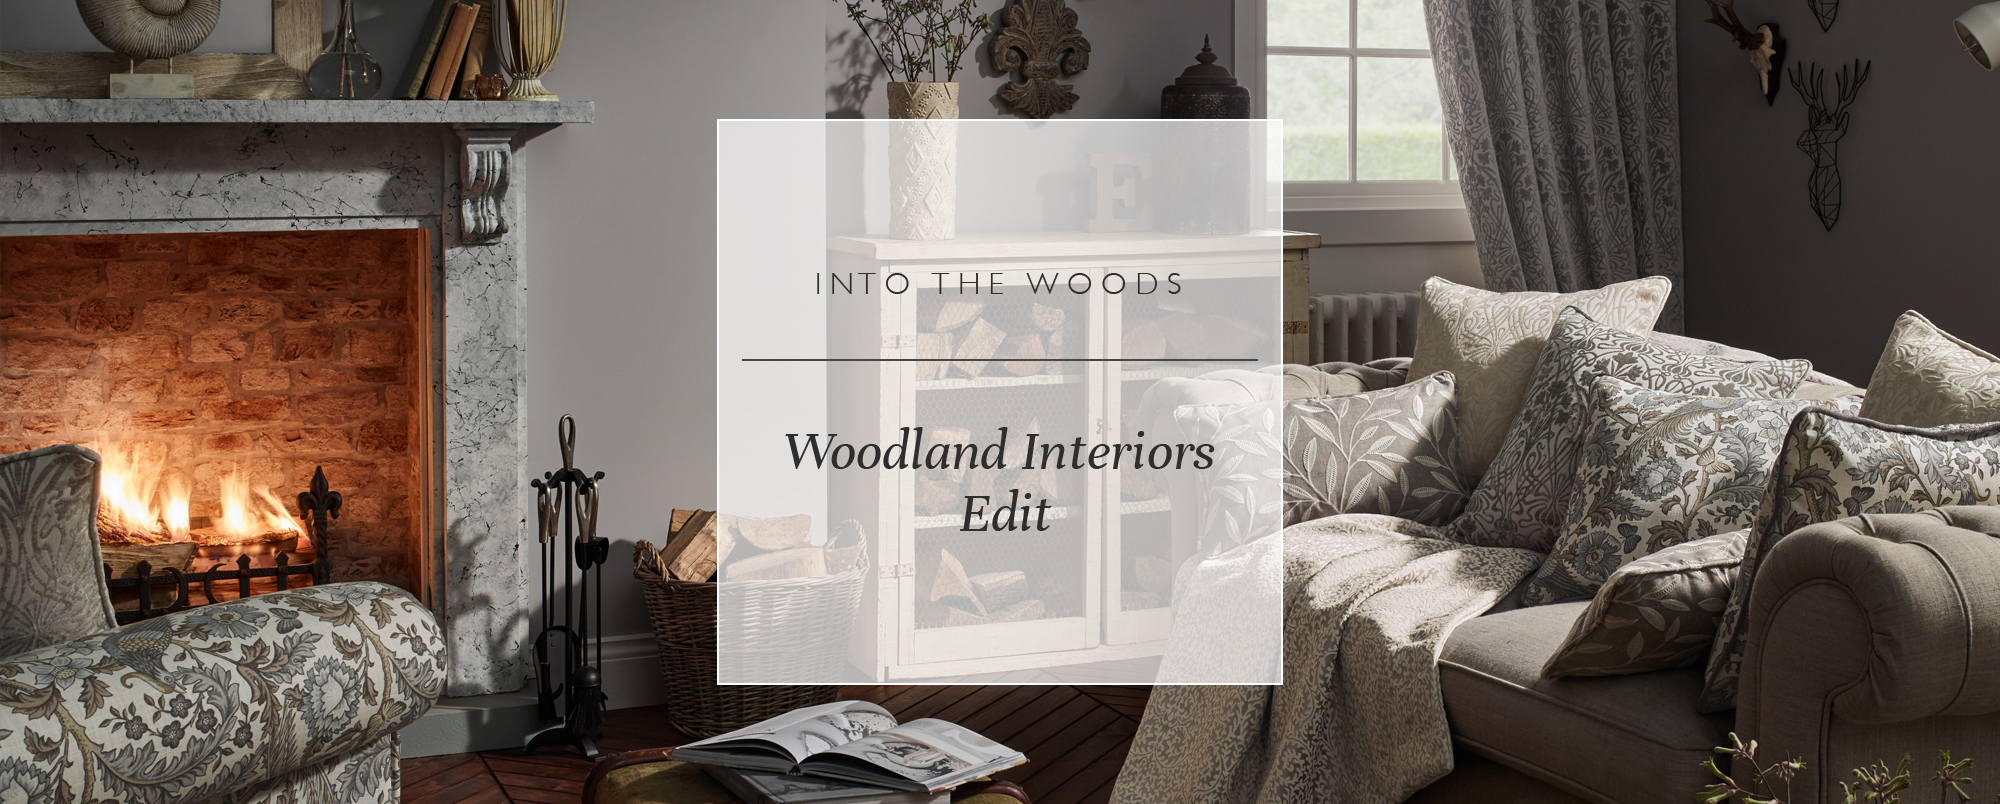 Into The Woods: Woodland Interiors Edit